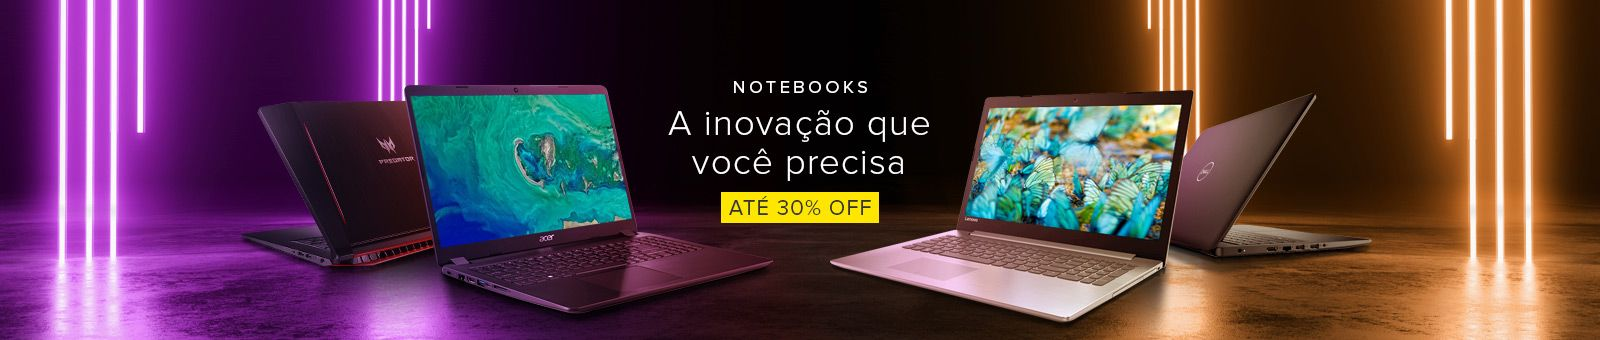 Especial Notebooks